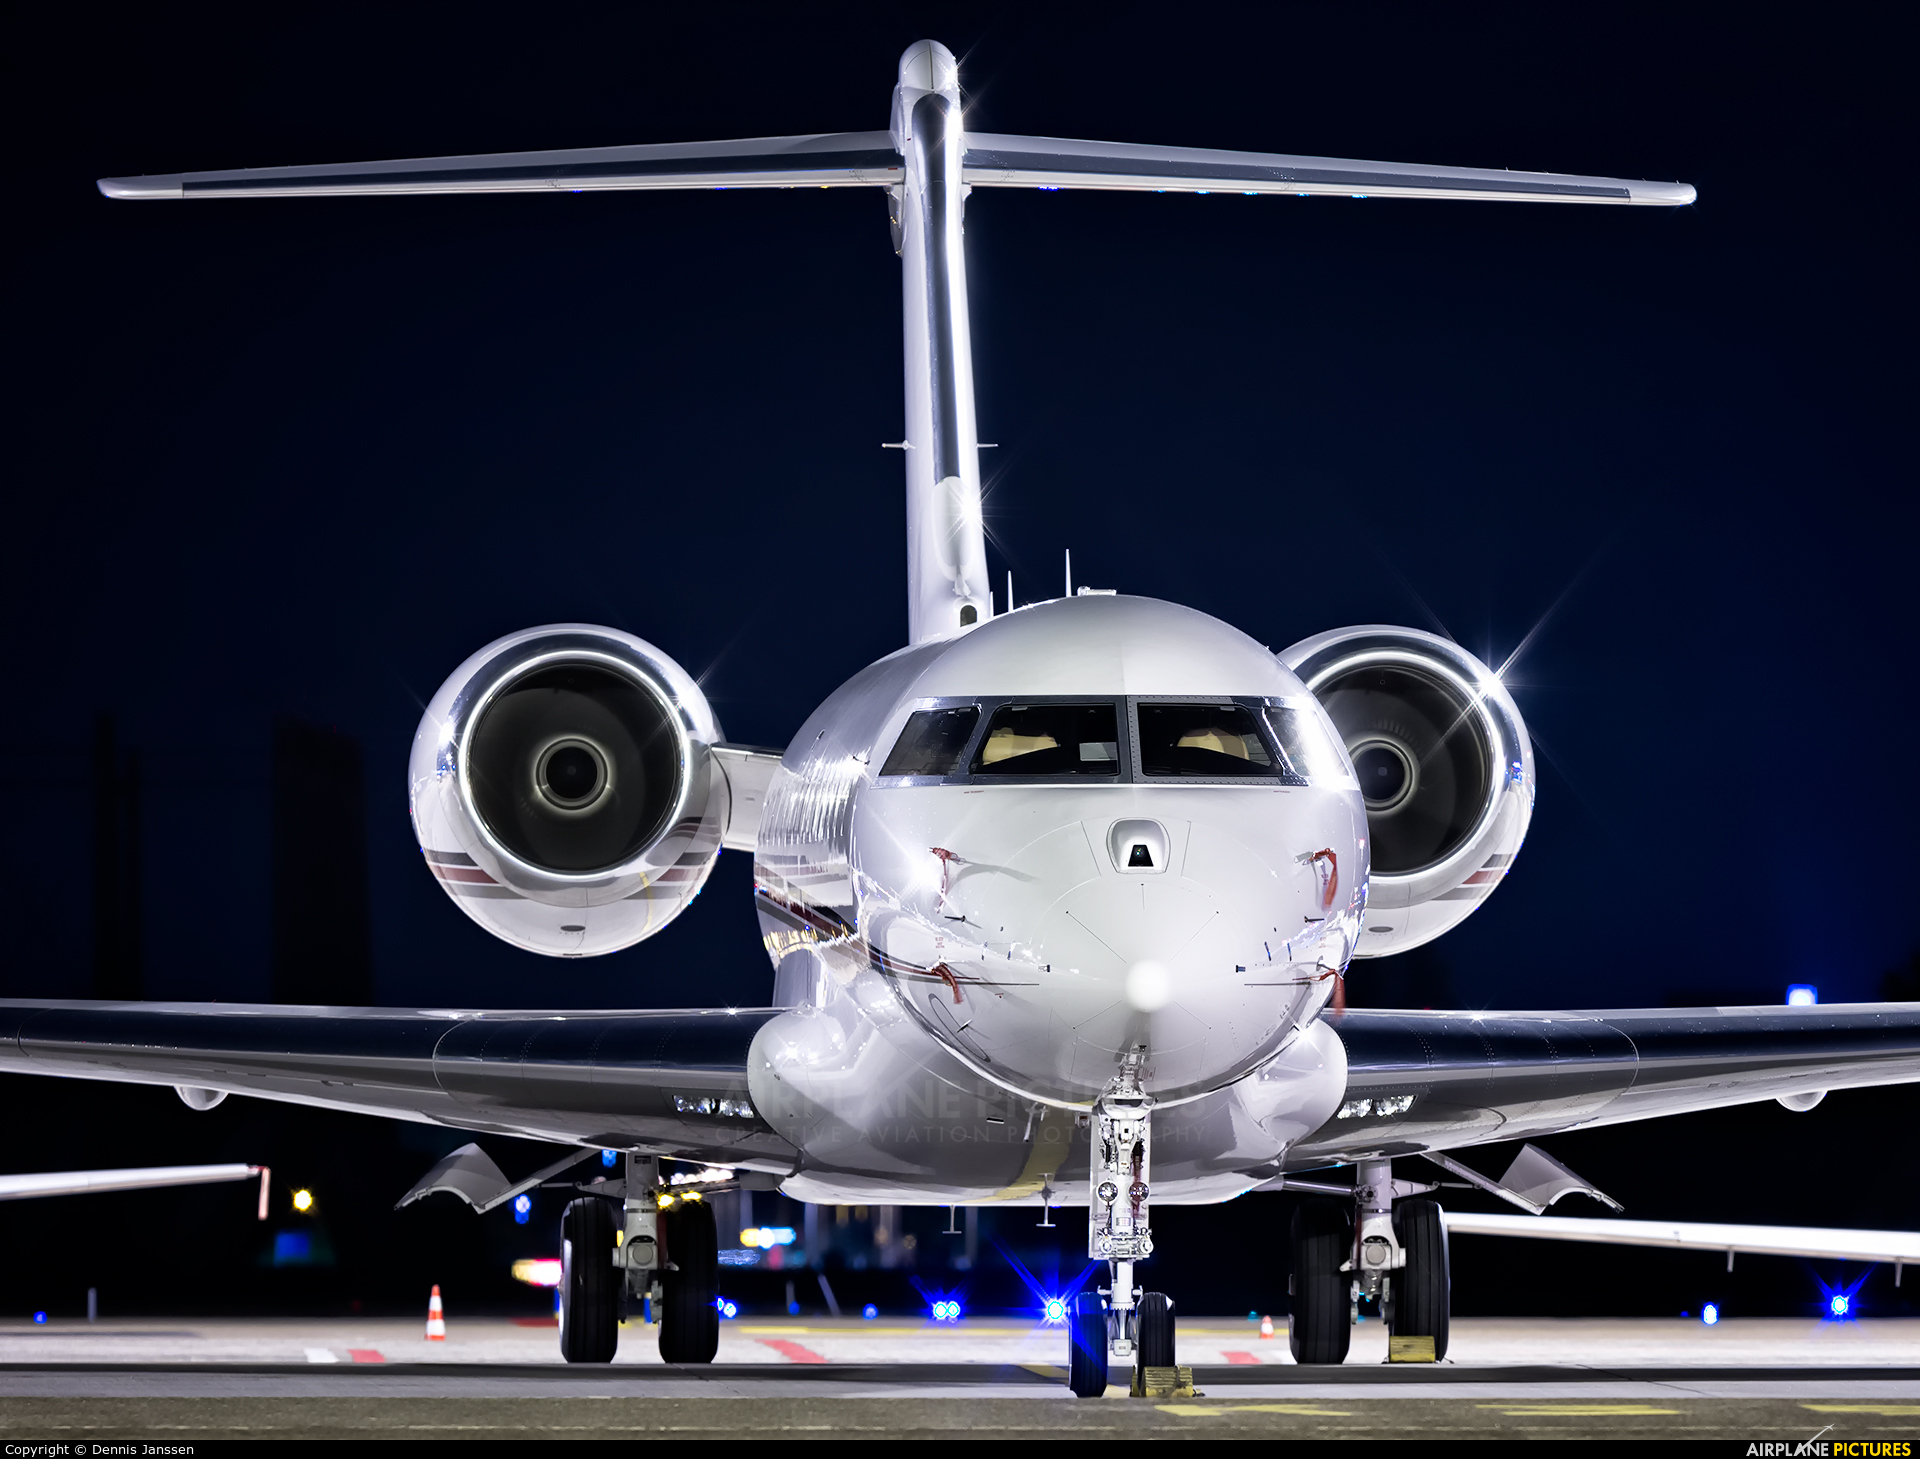 NetJets Europe (Portugal) CS-GLD aircraft at Amsterdam - Schiphol